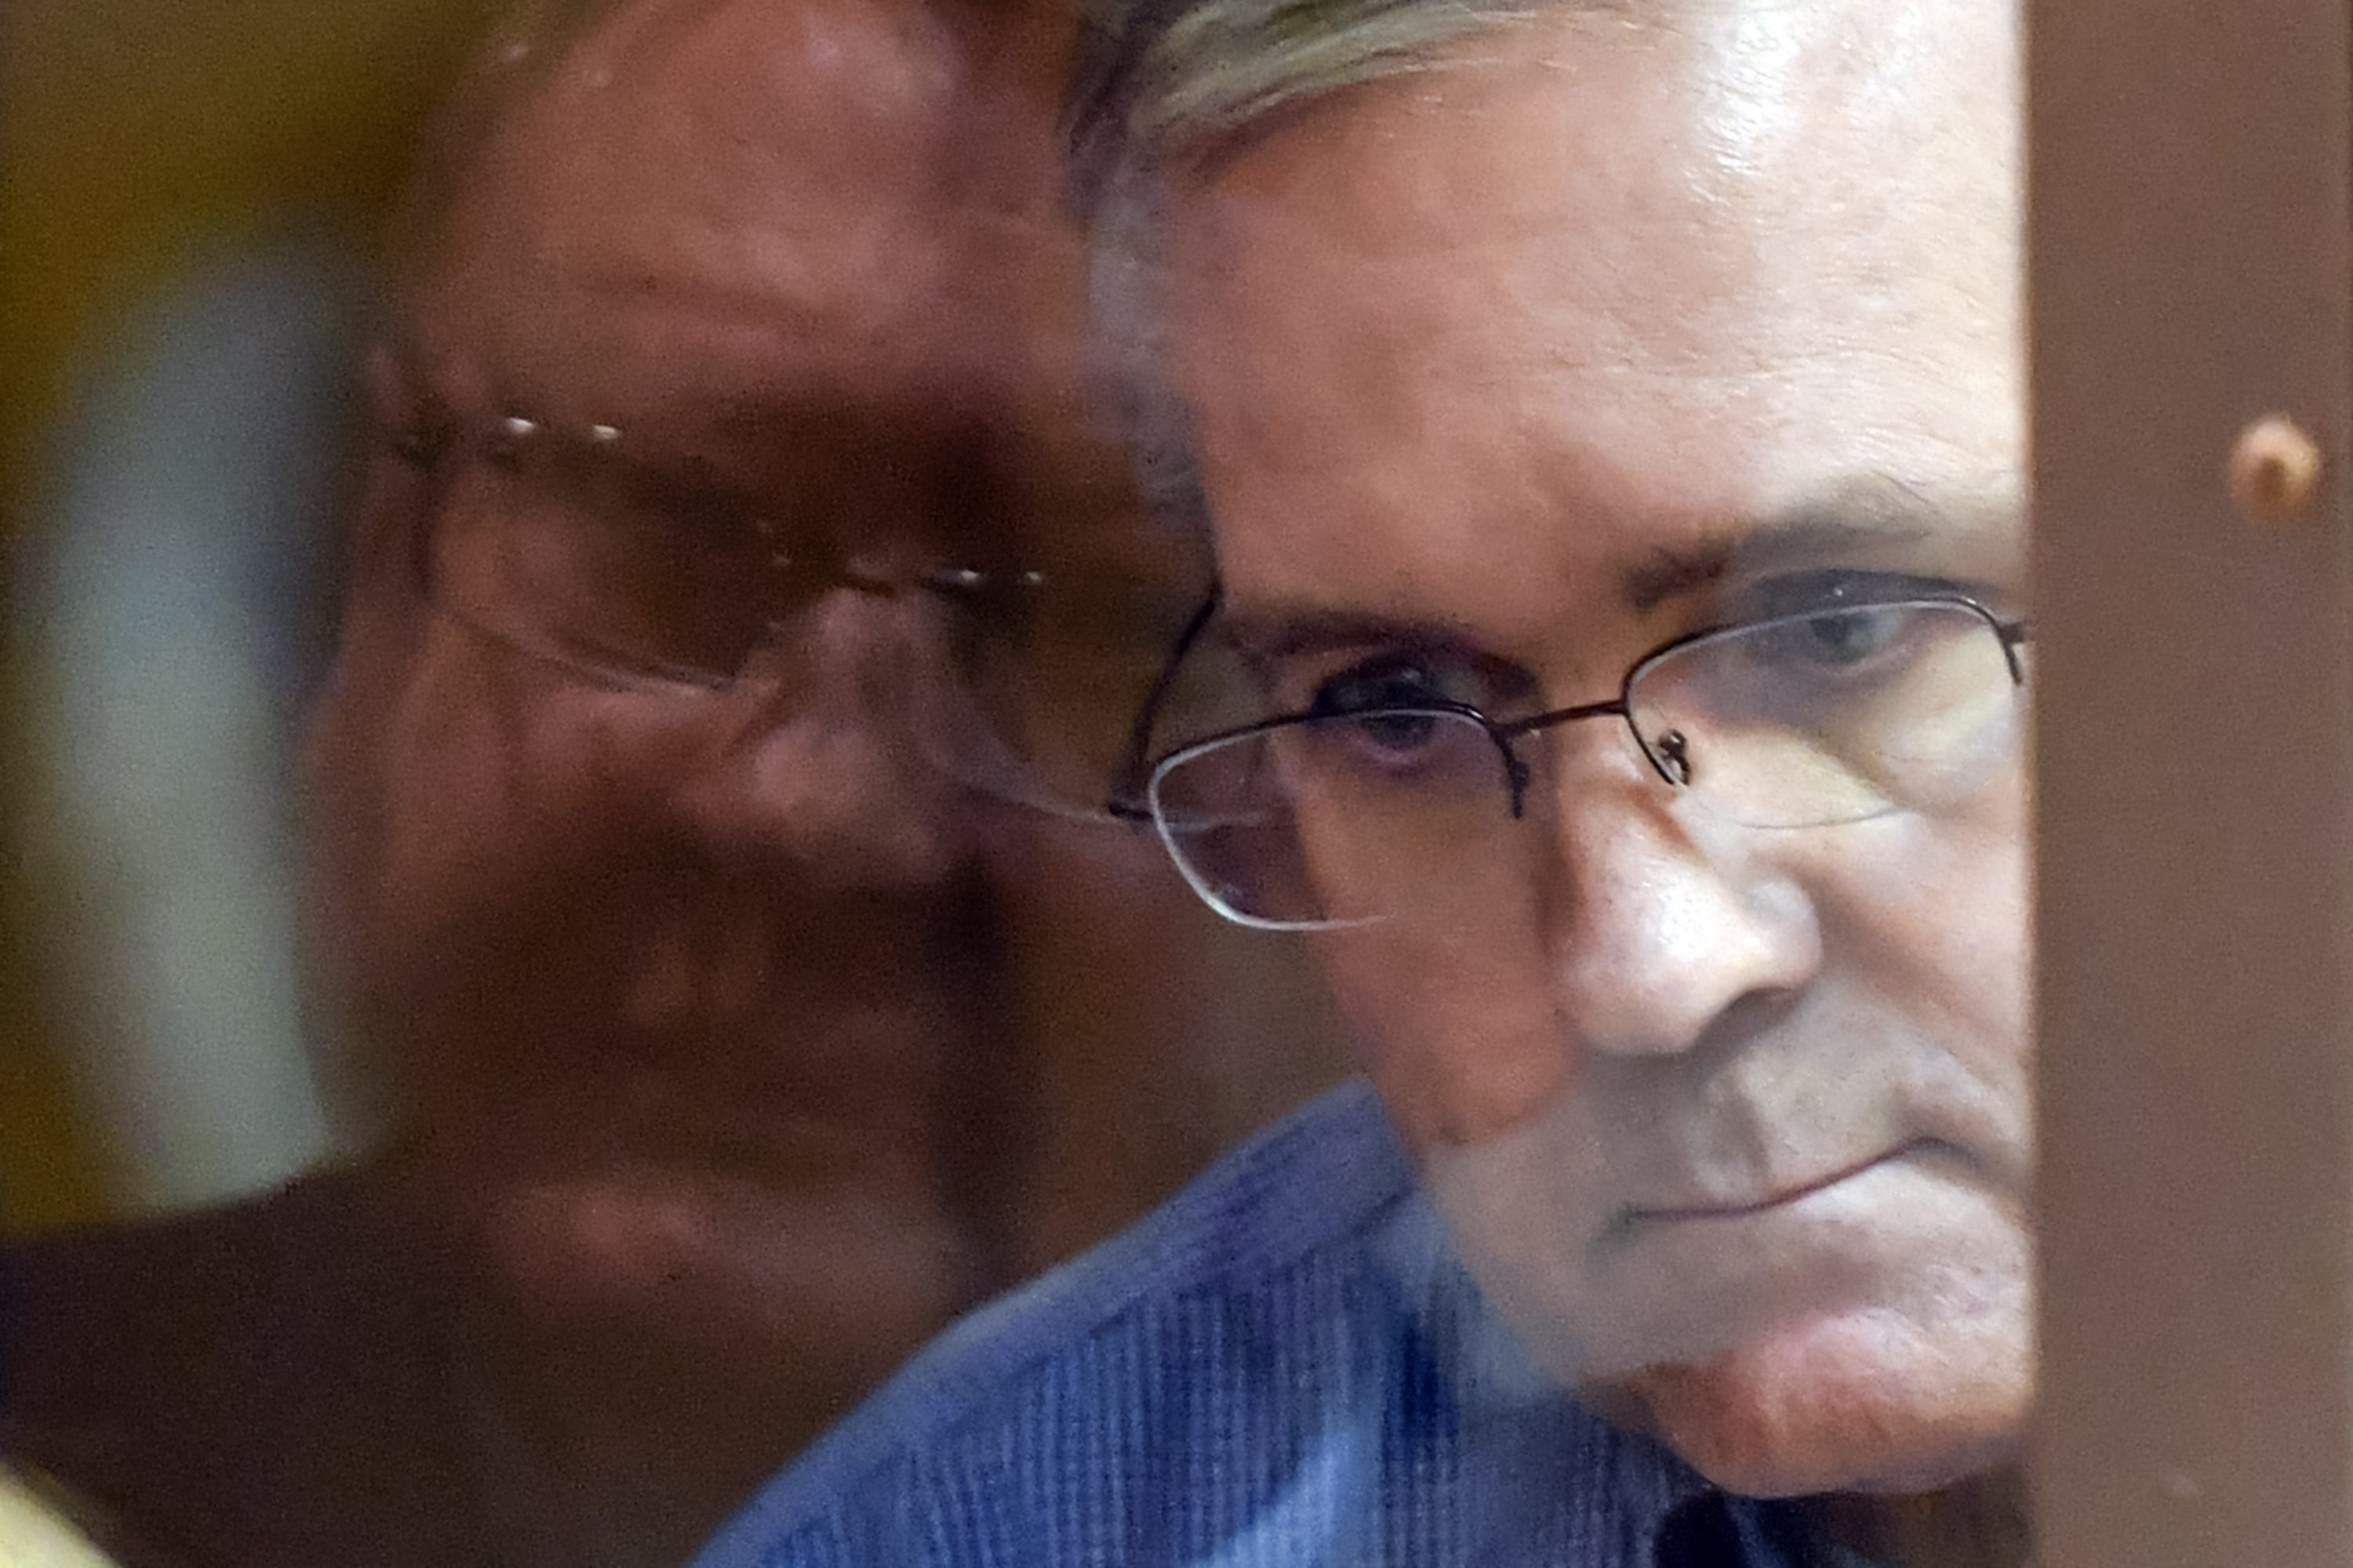 Paul Whelan, a former U.S. Marine accused of espionage and arrested in Russia, listens to his lawyers while standing inside a defendants' cage during a hearing at a court in Moscow on Jan. 22, 2019.